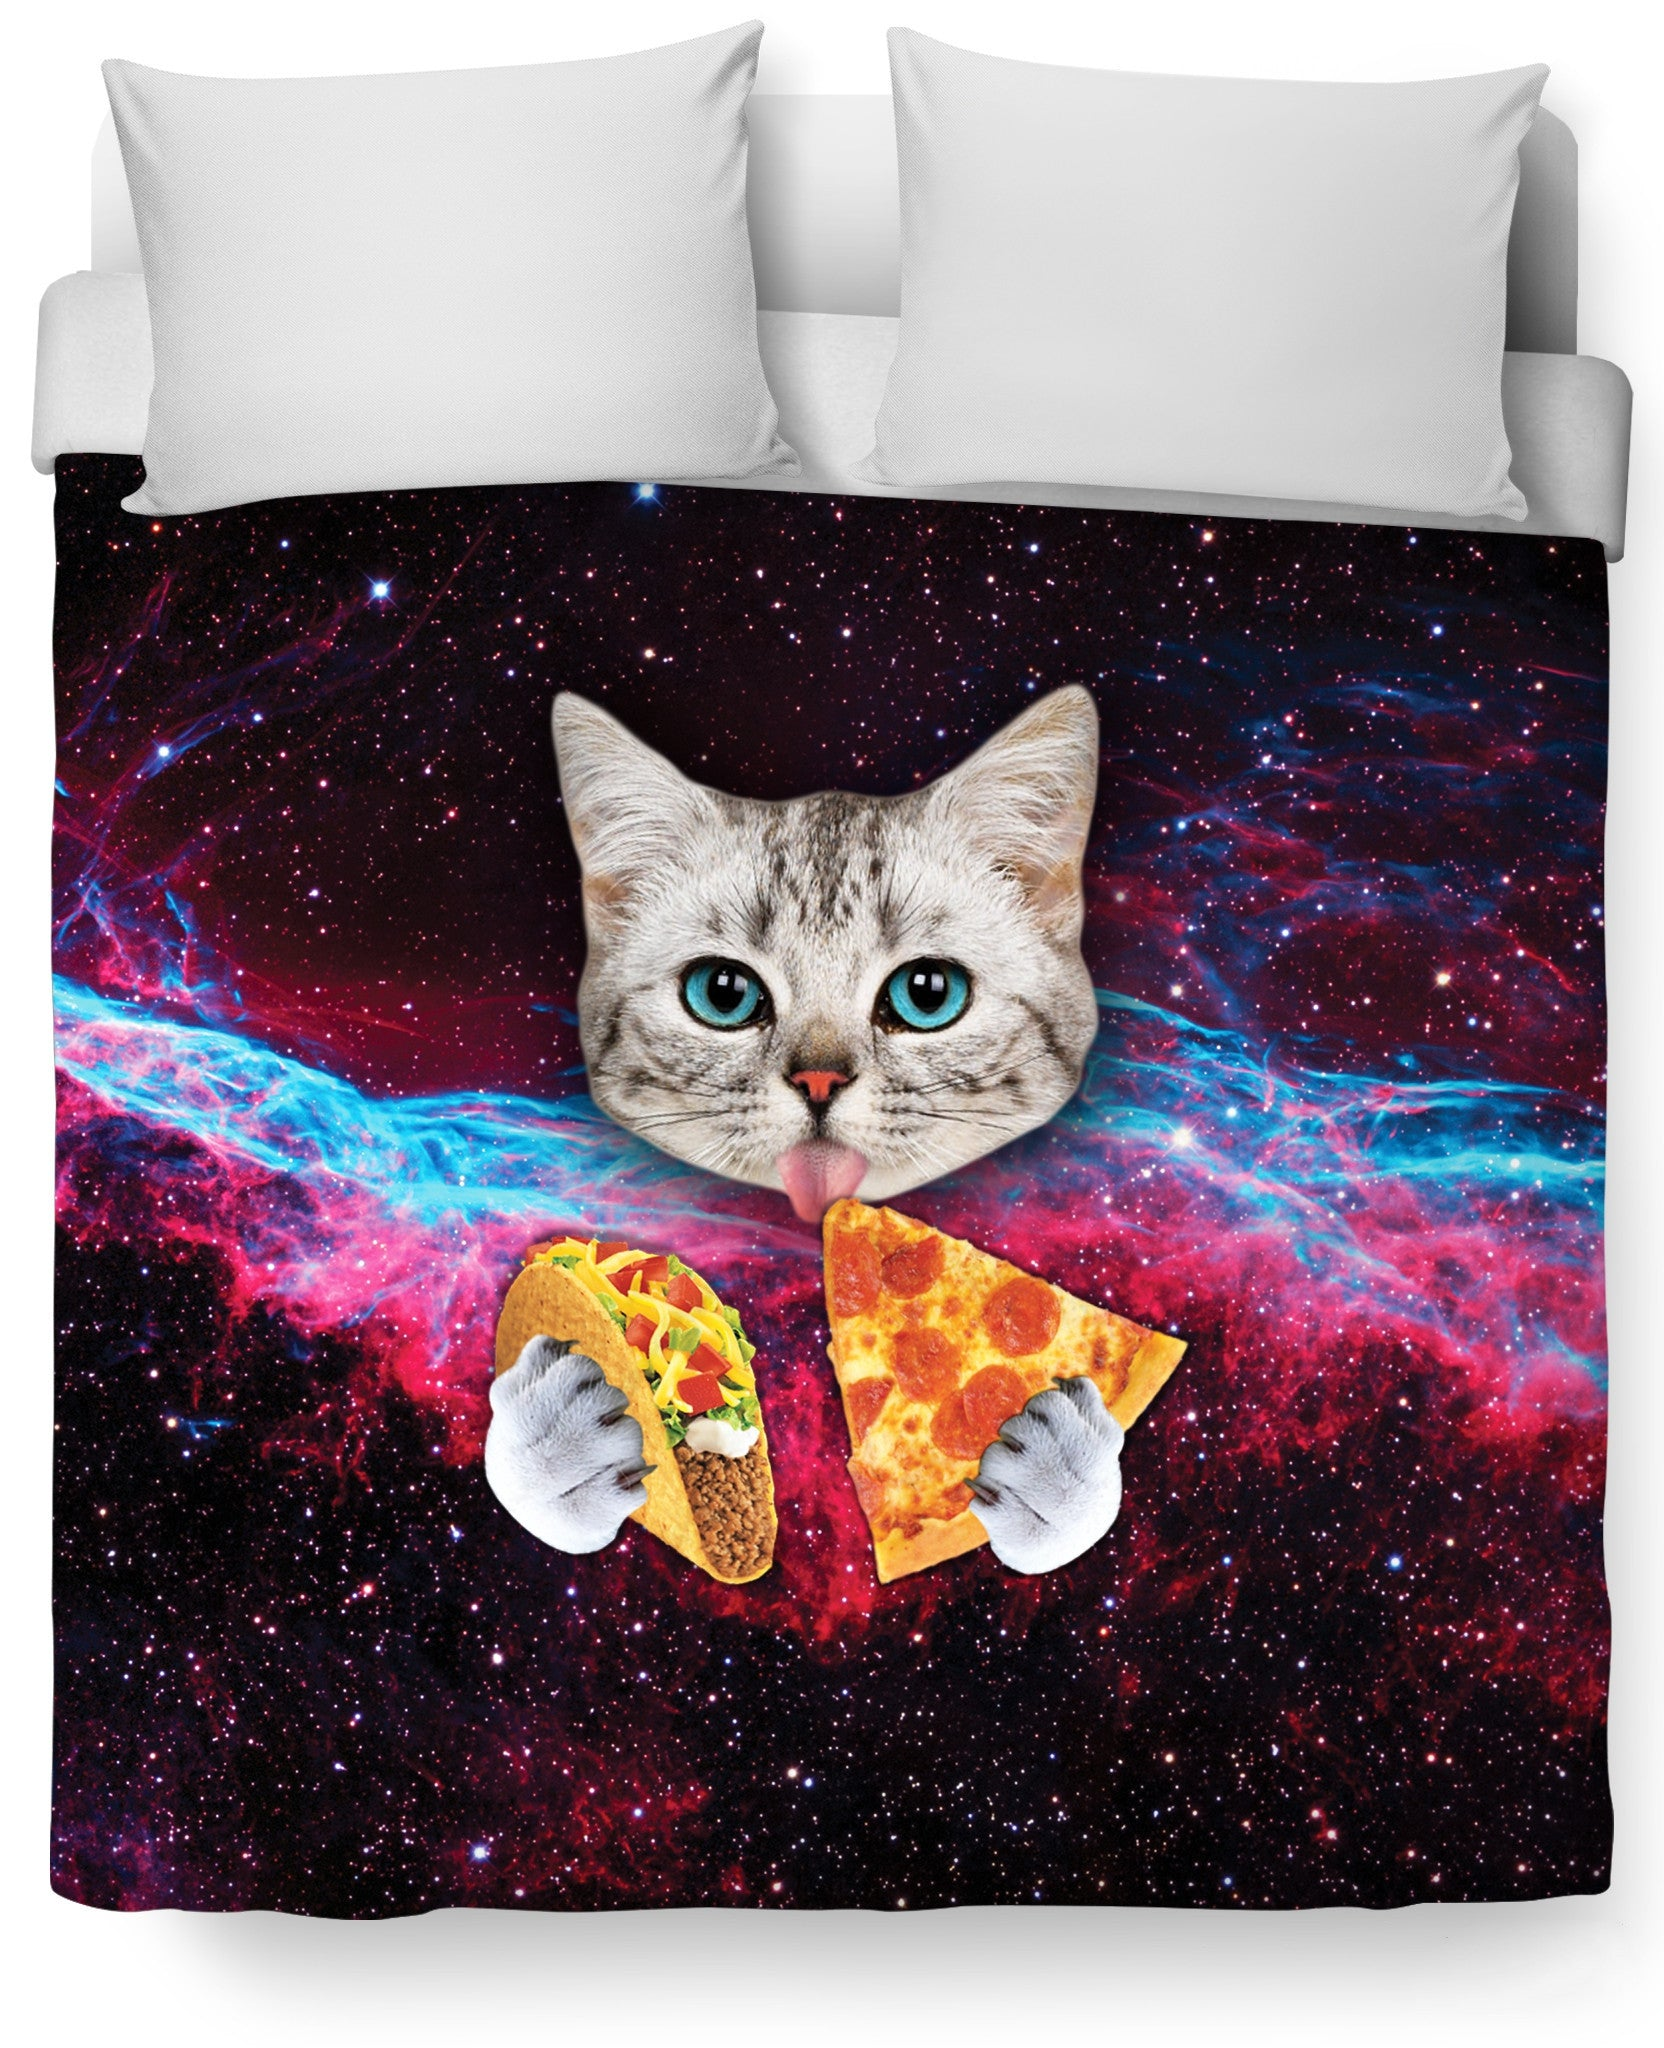 Taco Cat Duvet Cover - TShirtsRUS.co